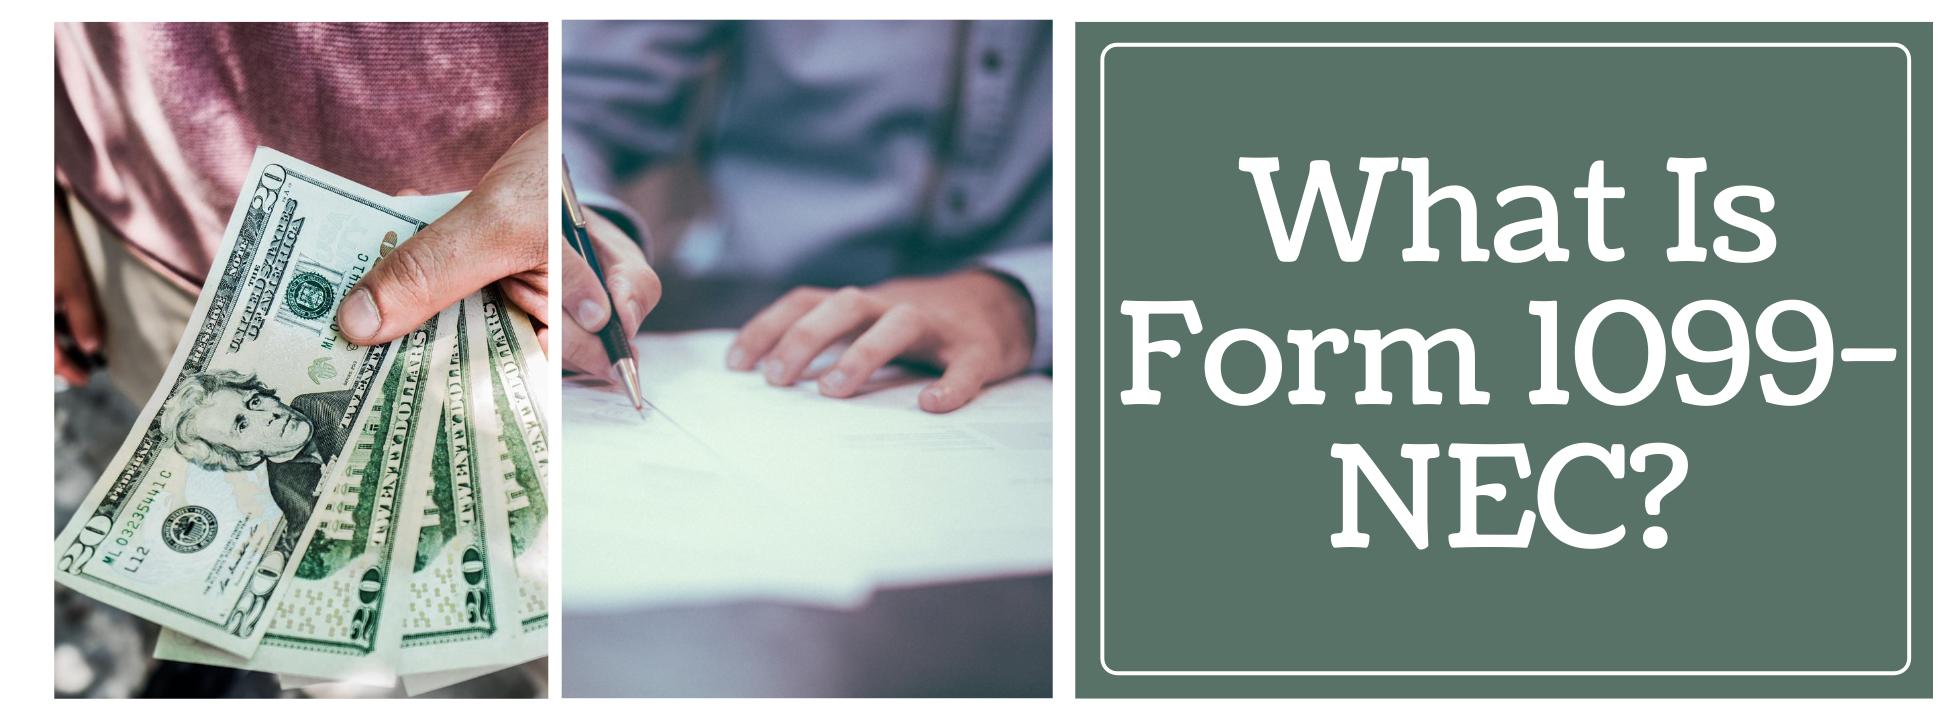 What Is Form 1099-NEC_